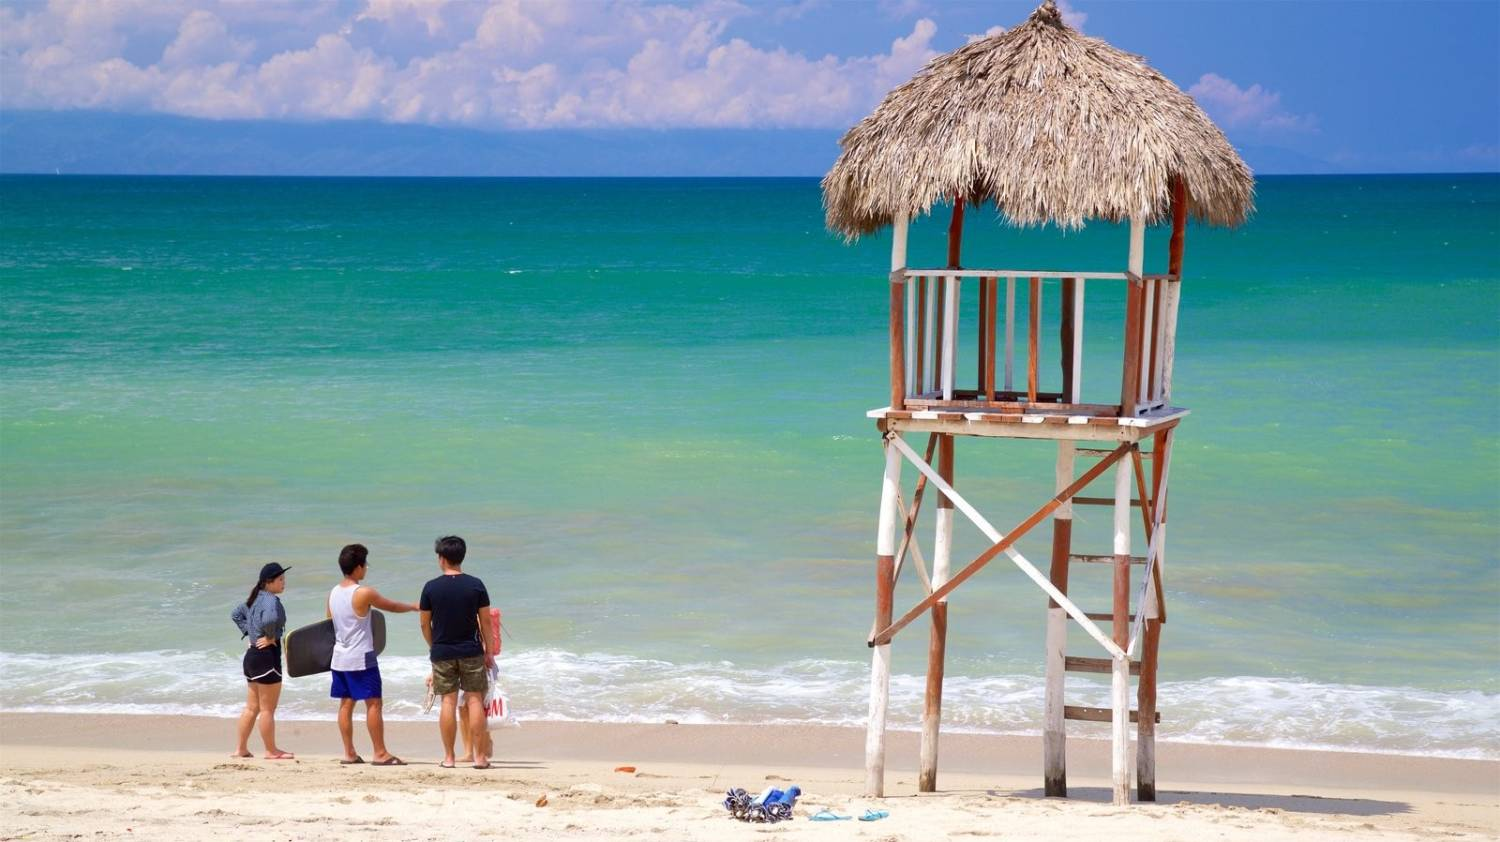 Bucerias - The Best Places To Visit In Mexico